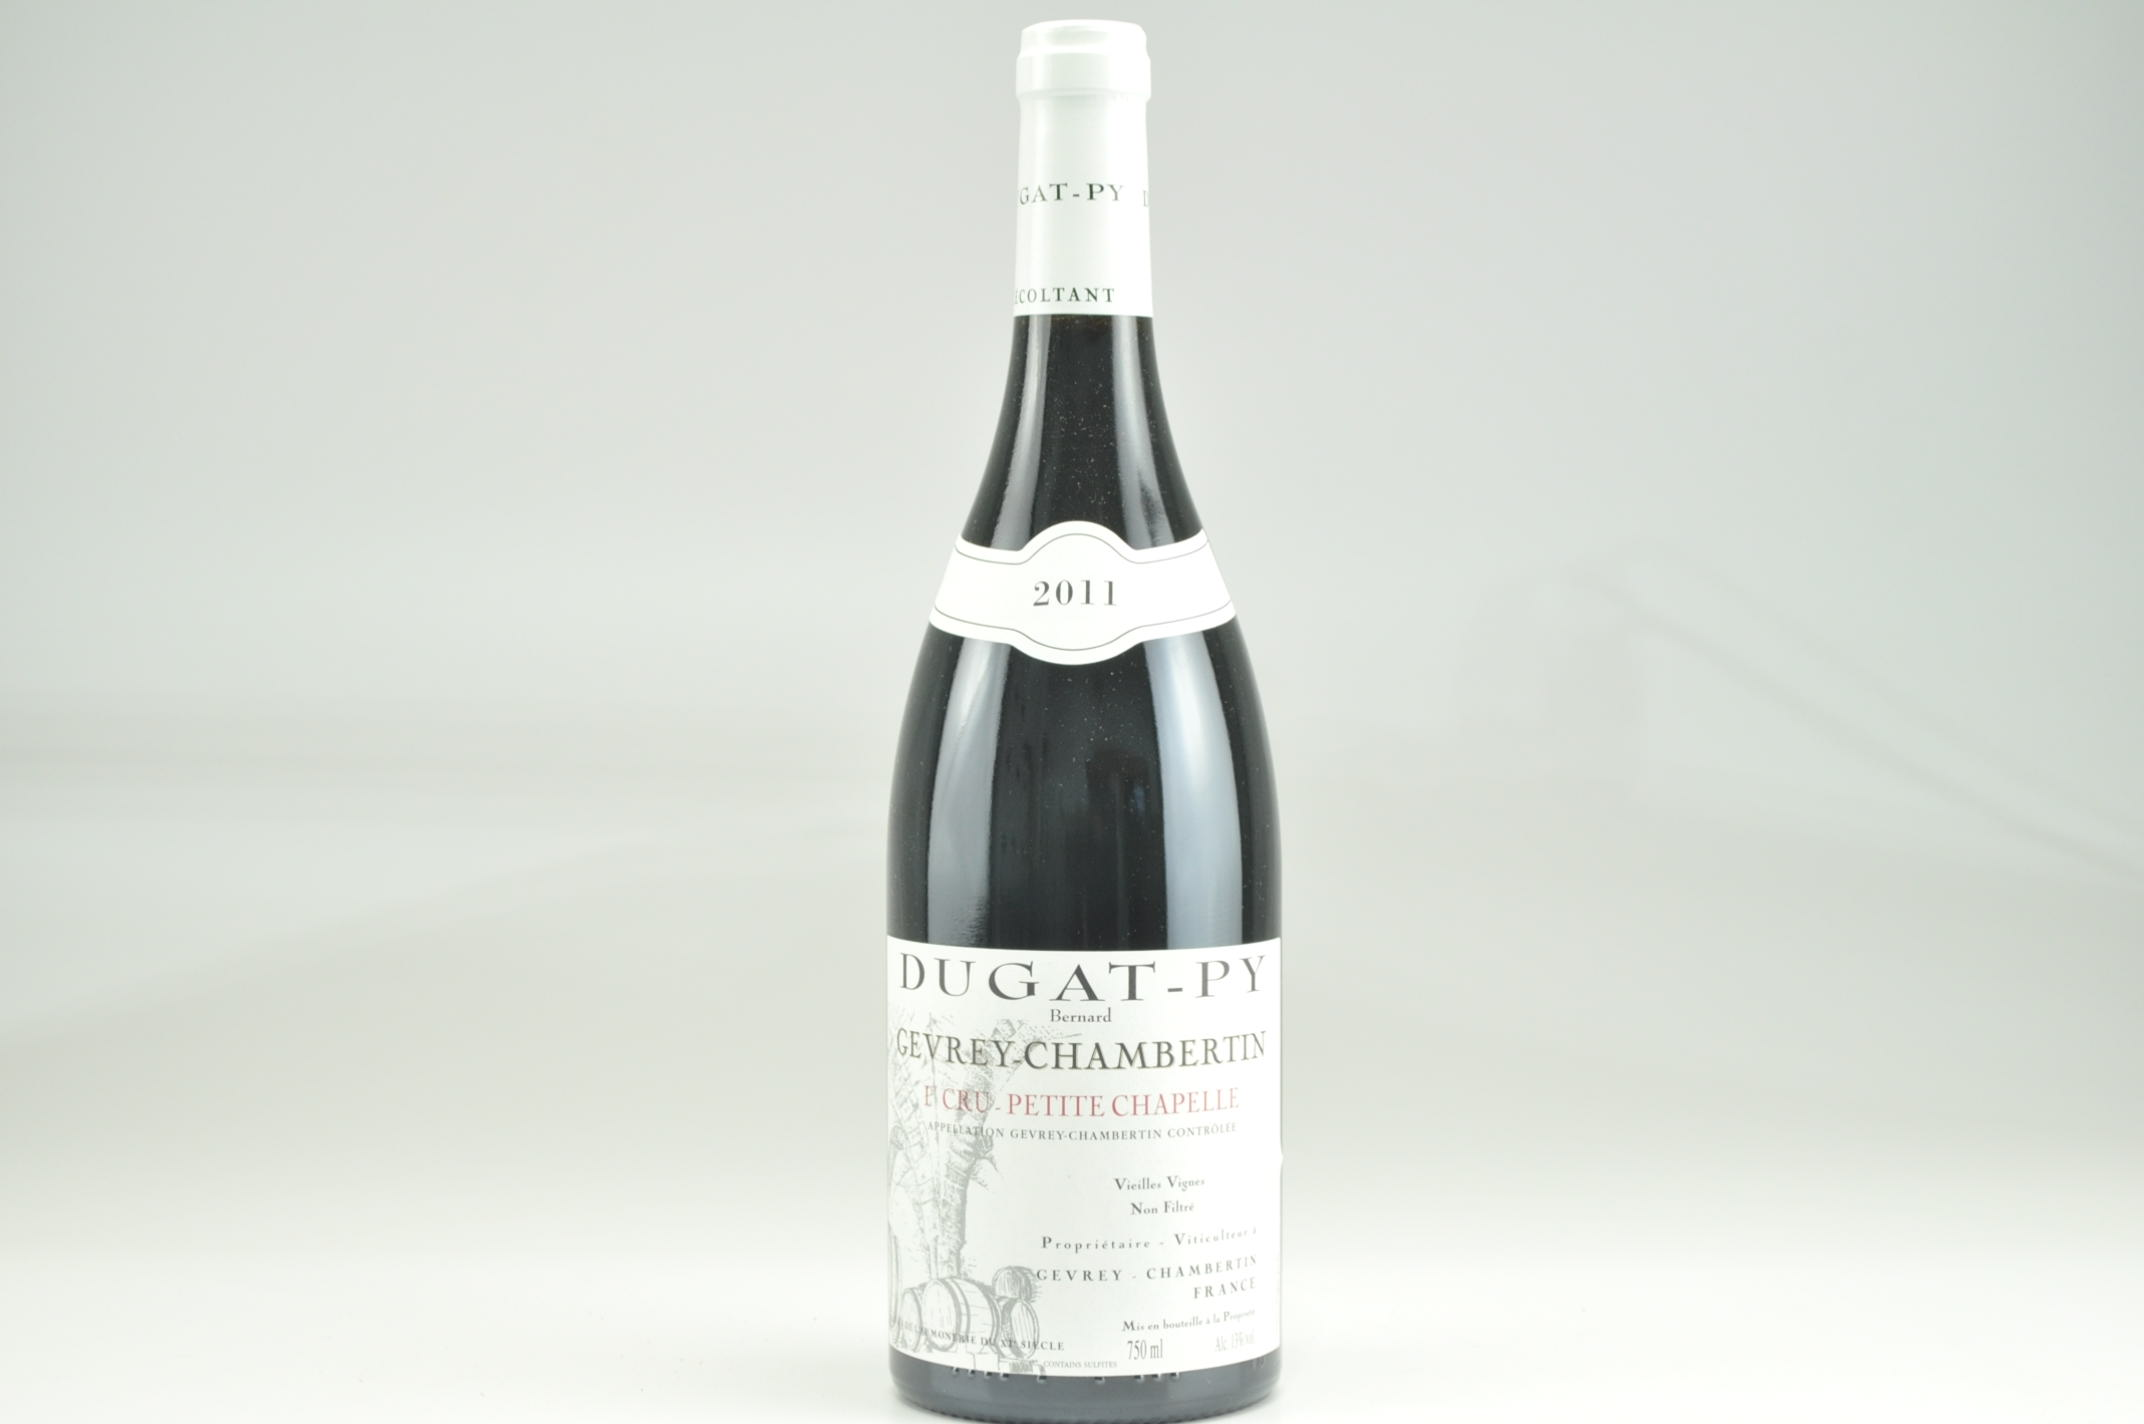 2011 Dugat-Py Petite Chapelle, Gevrey-Chambertin Other--93 AG--92